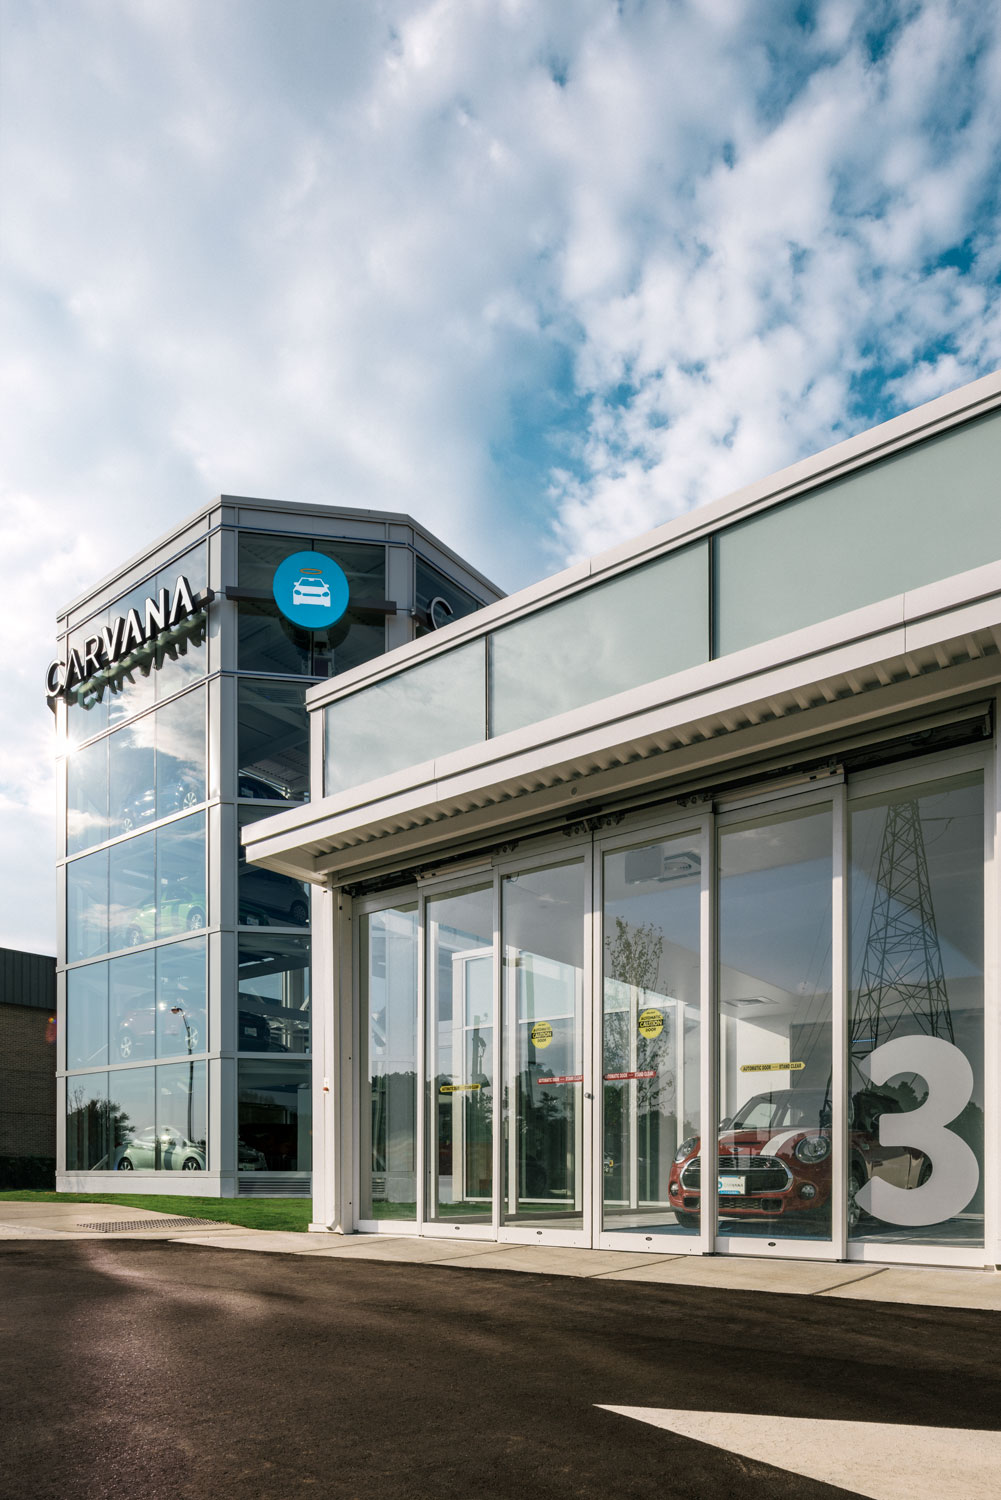 CARVANA, with a MINI Cooper S in bay 3 and their car vending machine on the left, Raleigh, NC © harlan erskine.